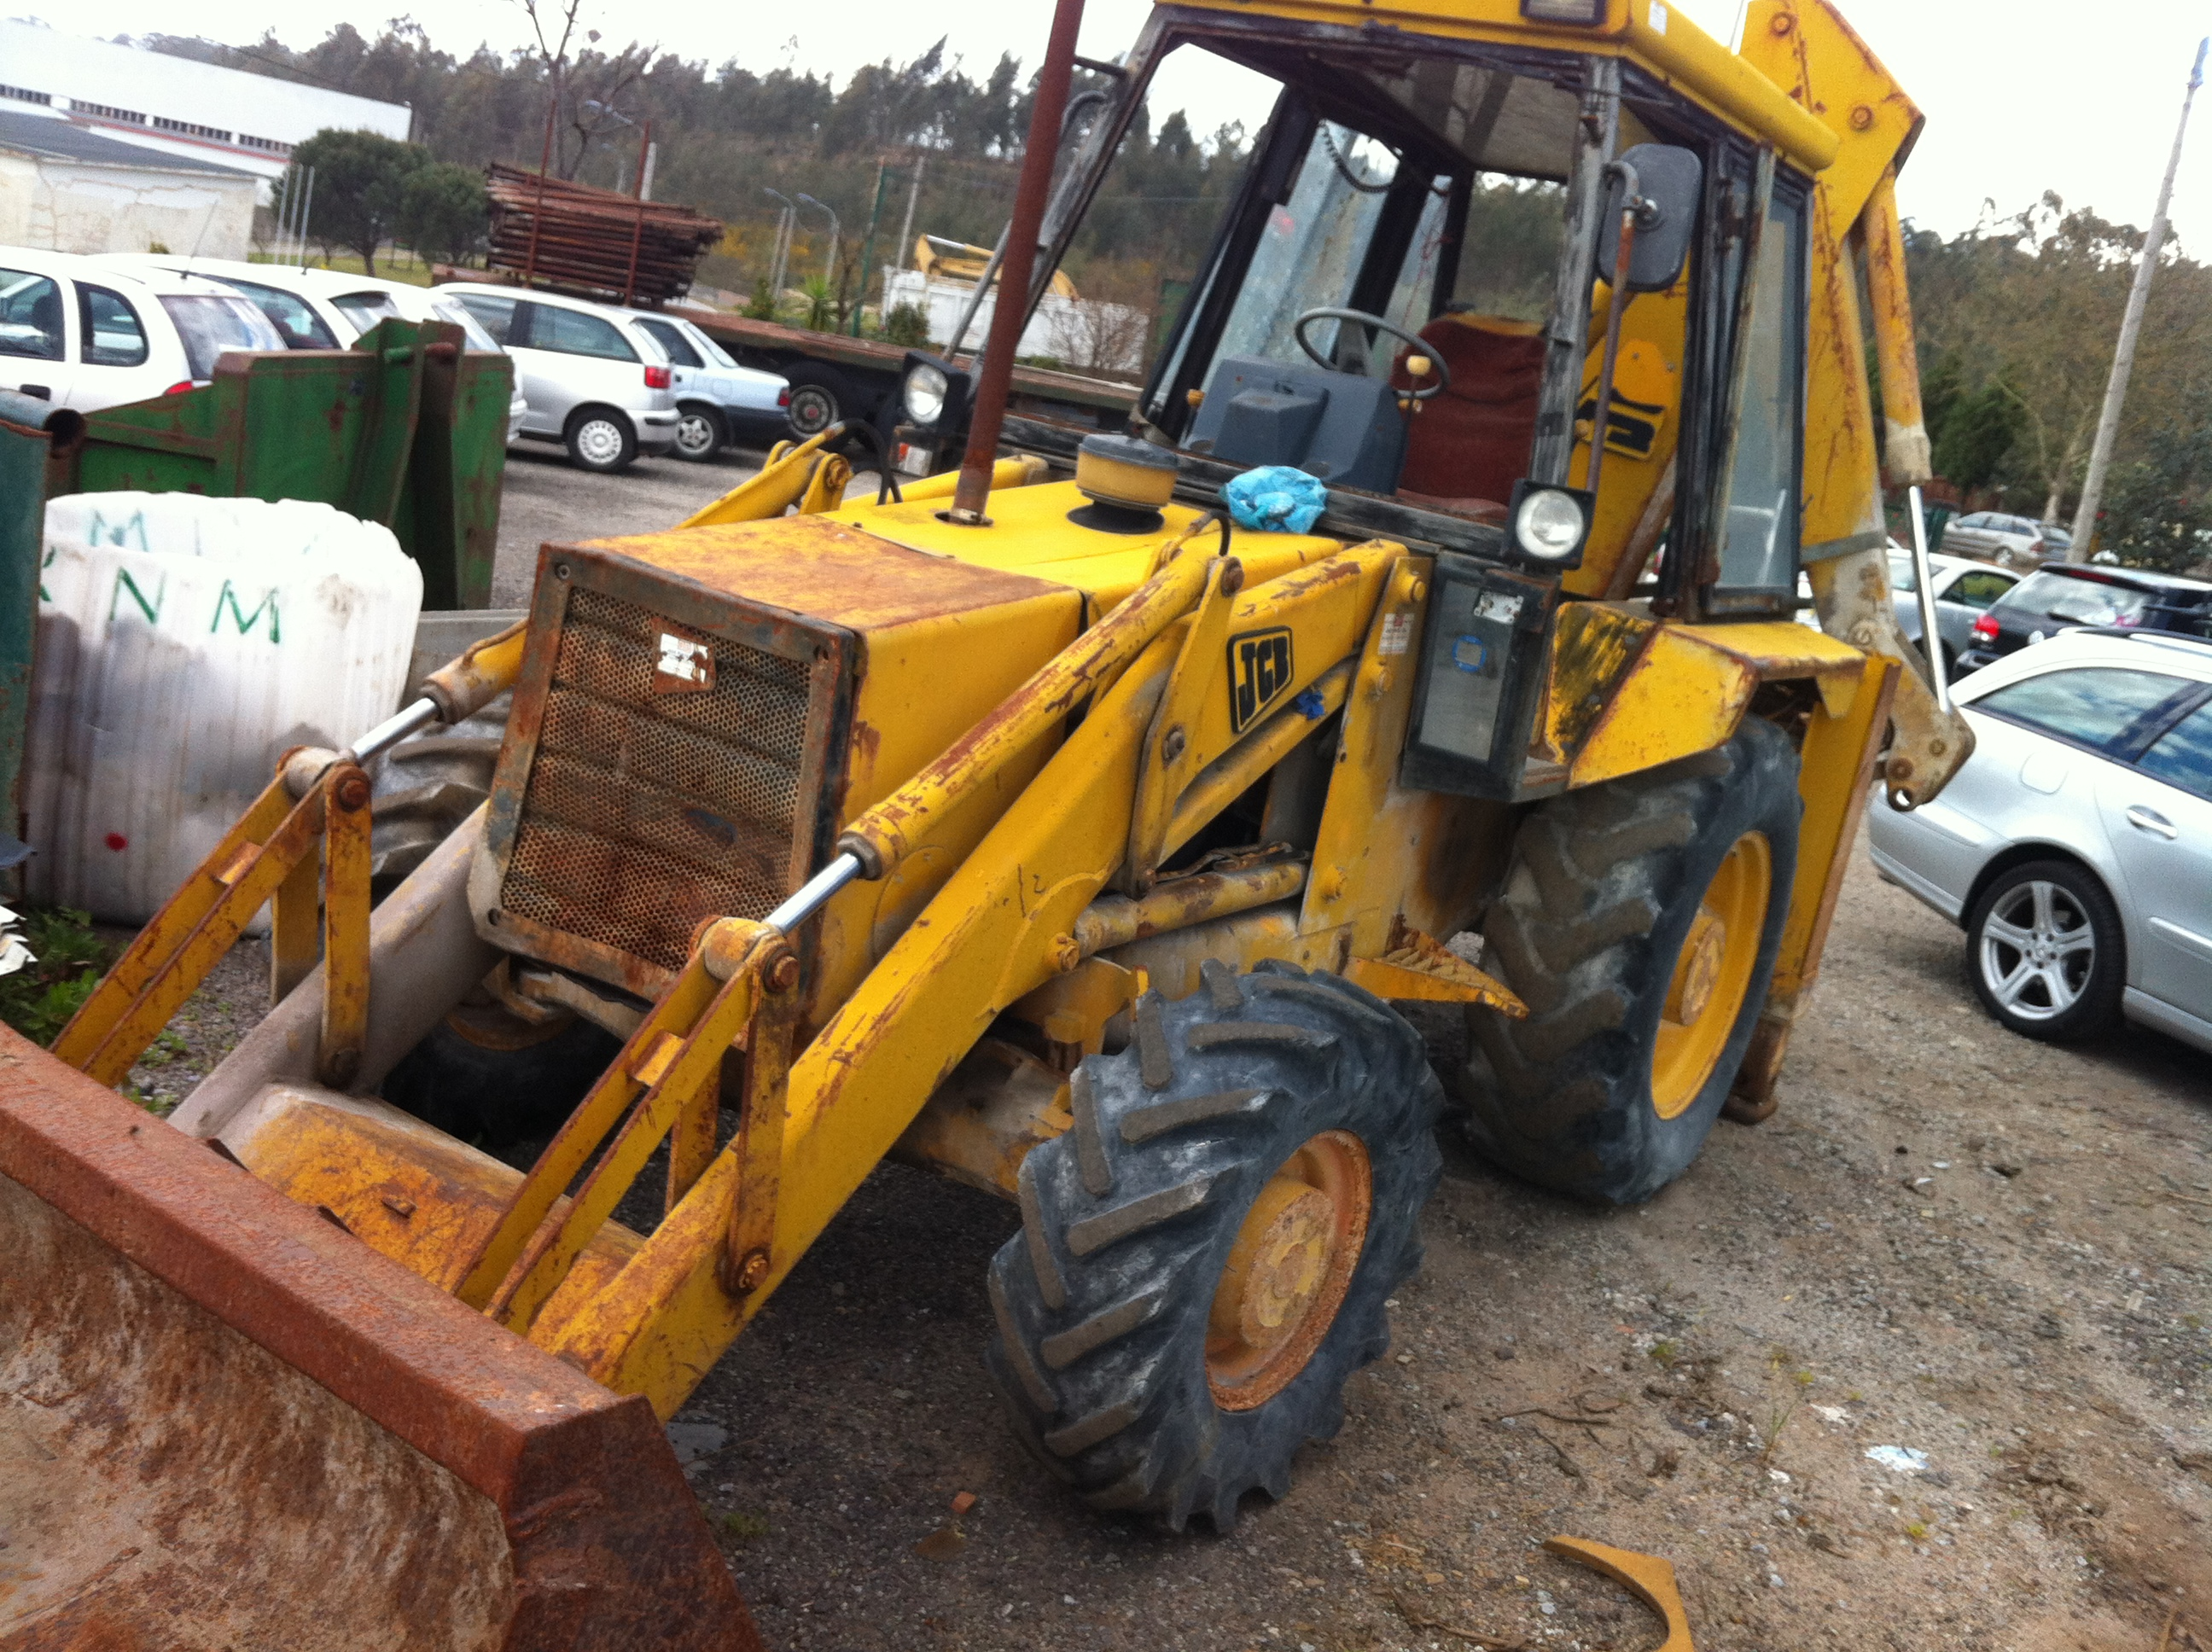 Sorry, this offer is no longer available on ExaproJCB 3CX-4/351393/P Excavator / Bulldozer / Loaders